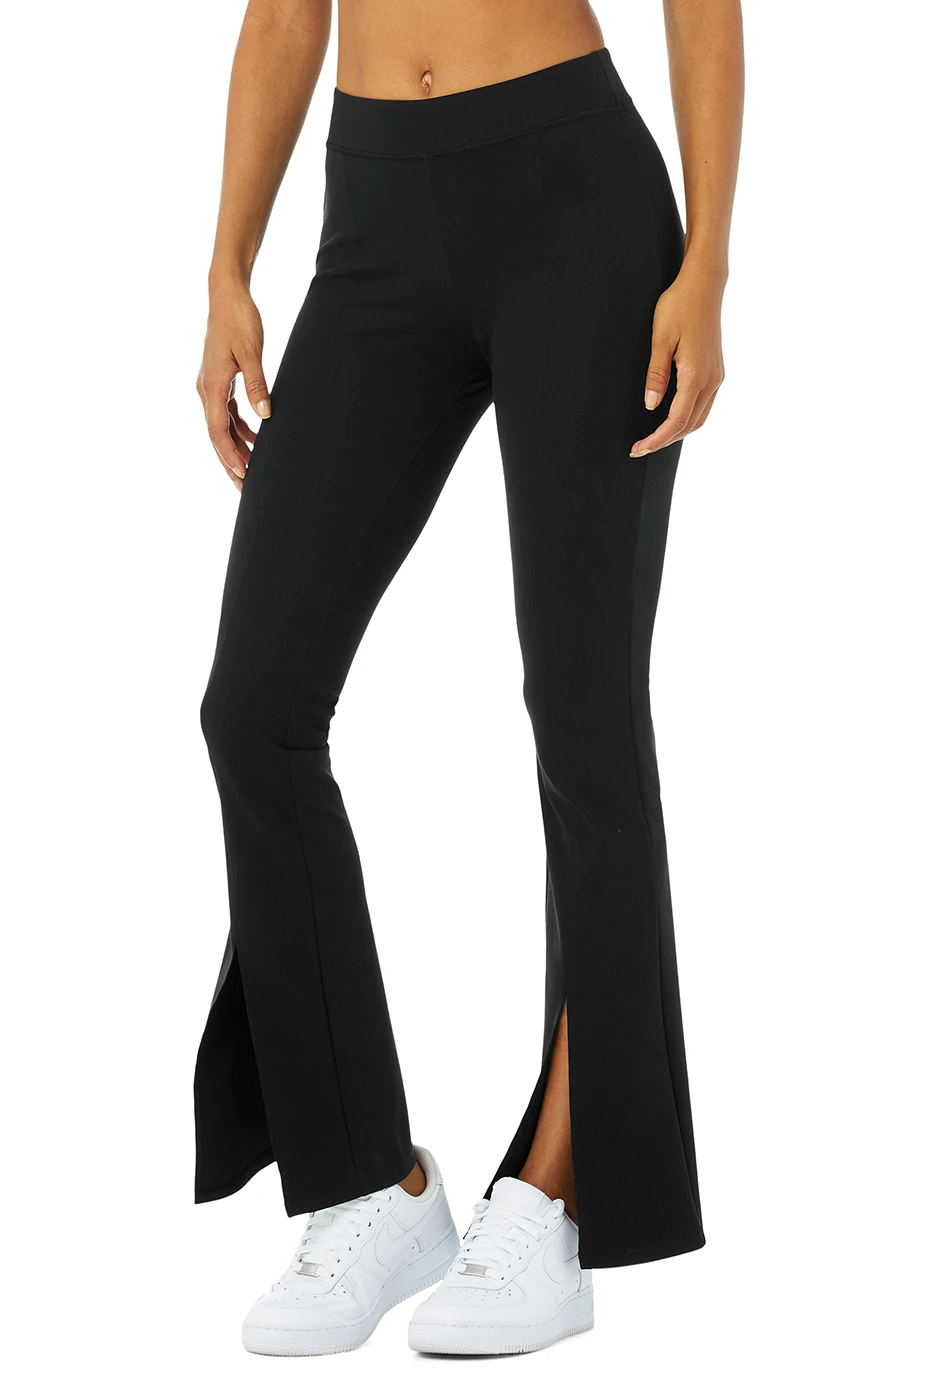 Airbrush High-Waist Flutter Legging - Black